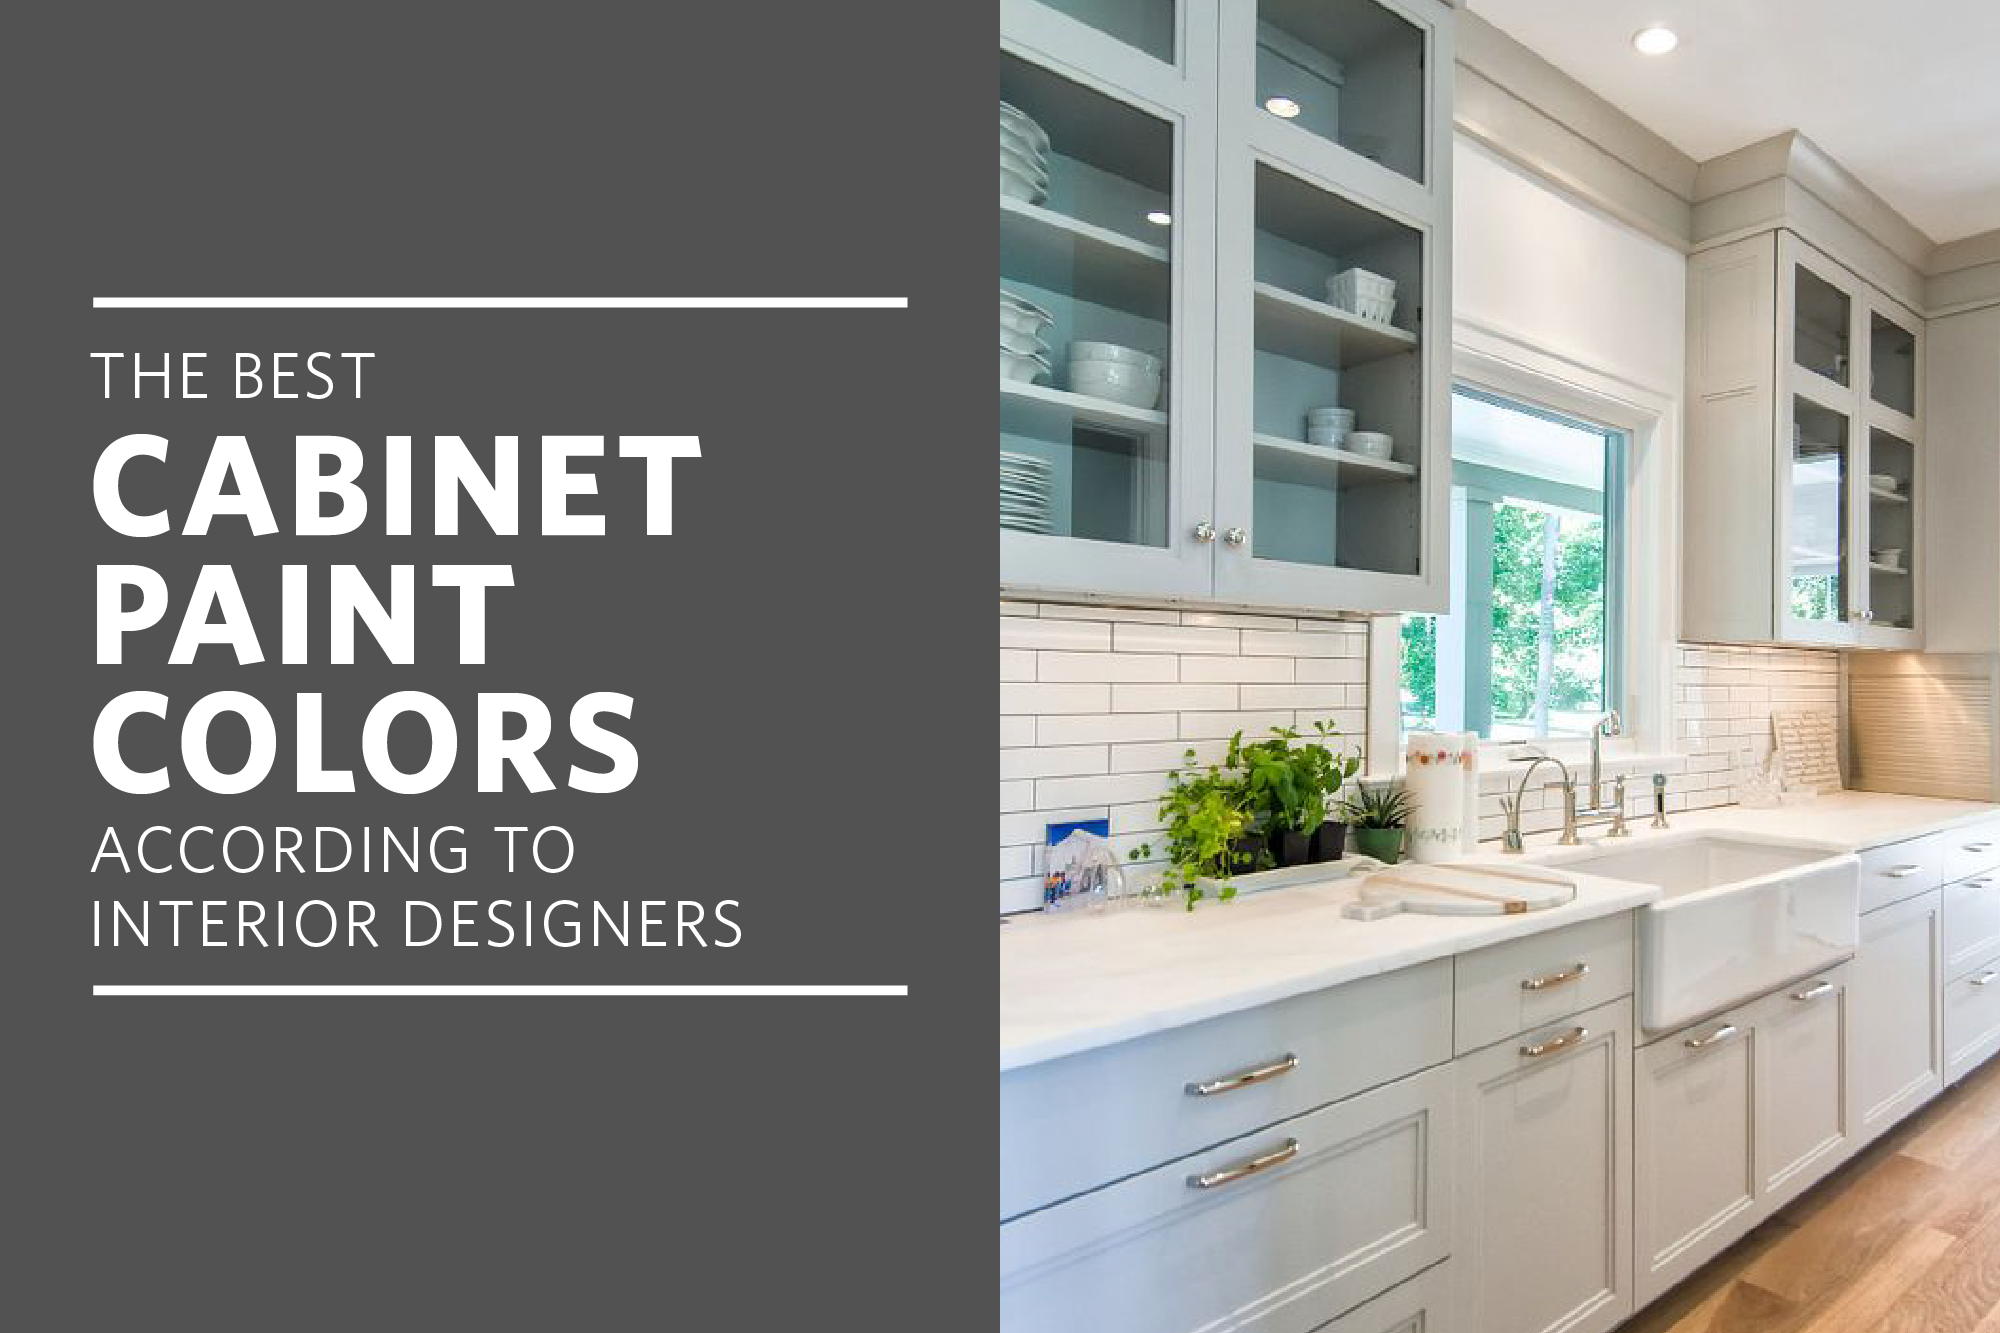 The Best Paint Colors for Kitchen Cabinets | Kitchn Ideas Galley Kitchen Behr Colors on kitchen cabinet design ideas, dining room color ideas, small kitchen design ideas, gray kitchen ideas, behr color studio, family room paint color ideas, behr pale yellow kitchen, behr kitchen colors with names, behr interior colors for a comfortable home 2013, behr gray colors for a kitchen, behr color wheel chart,